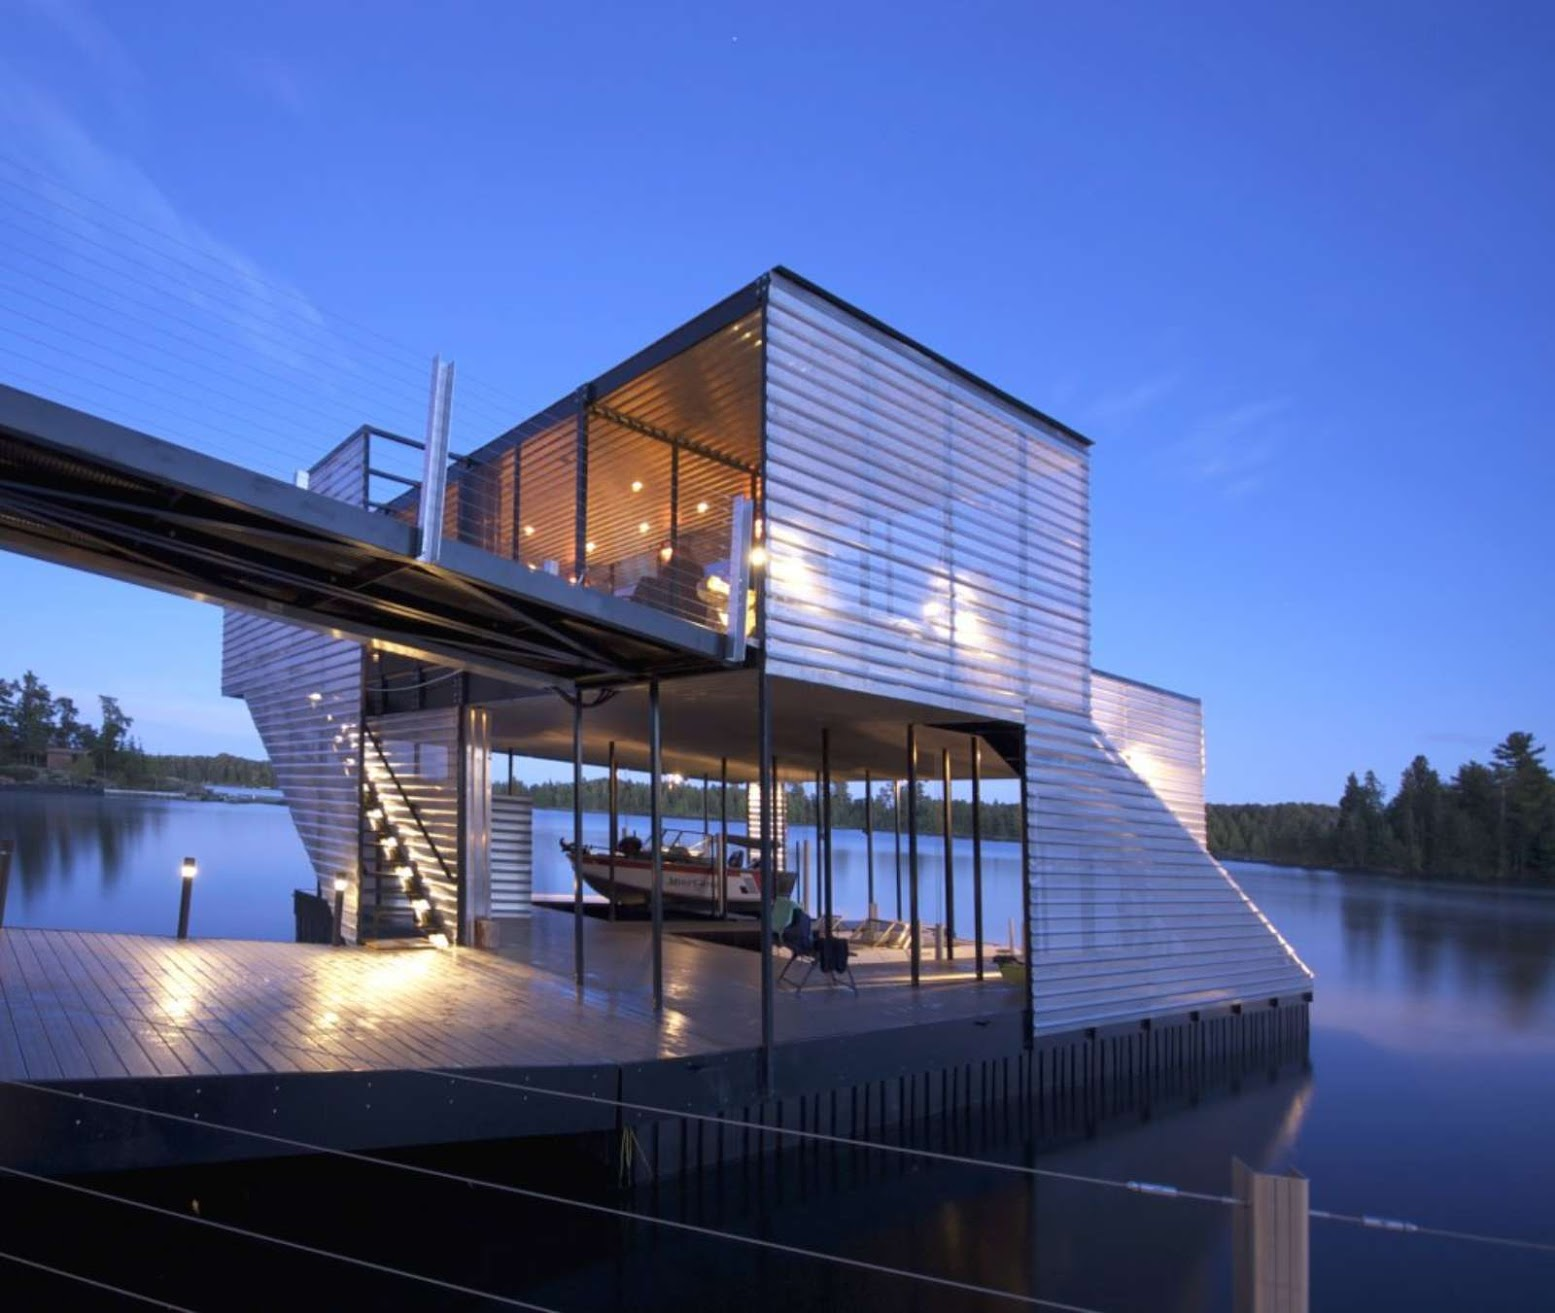 Storm Bay, Kenora, Unorganized, Ontario P0V, Canada: [GUERTIN BOATPORT BY 5468796 ARCHITECTURE]